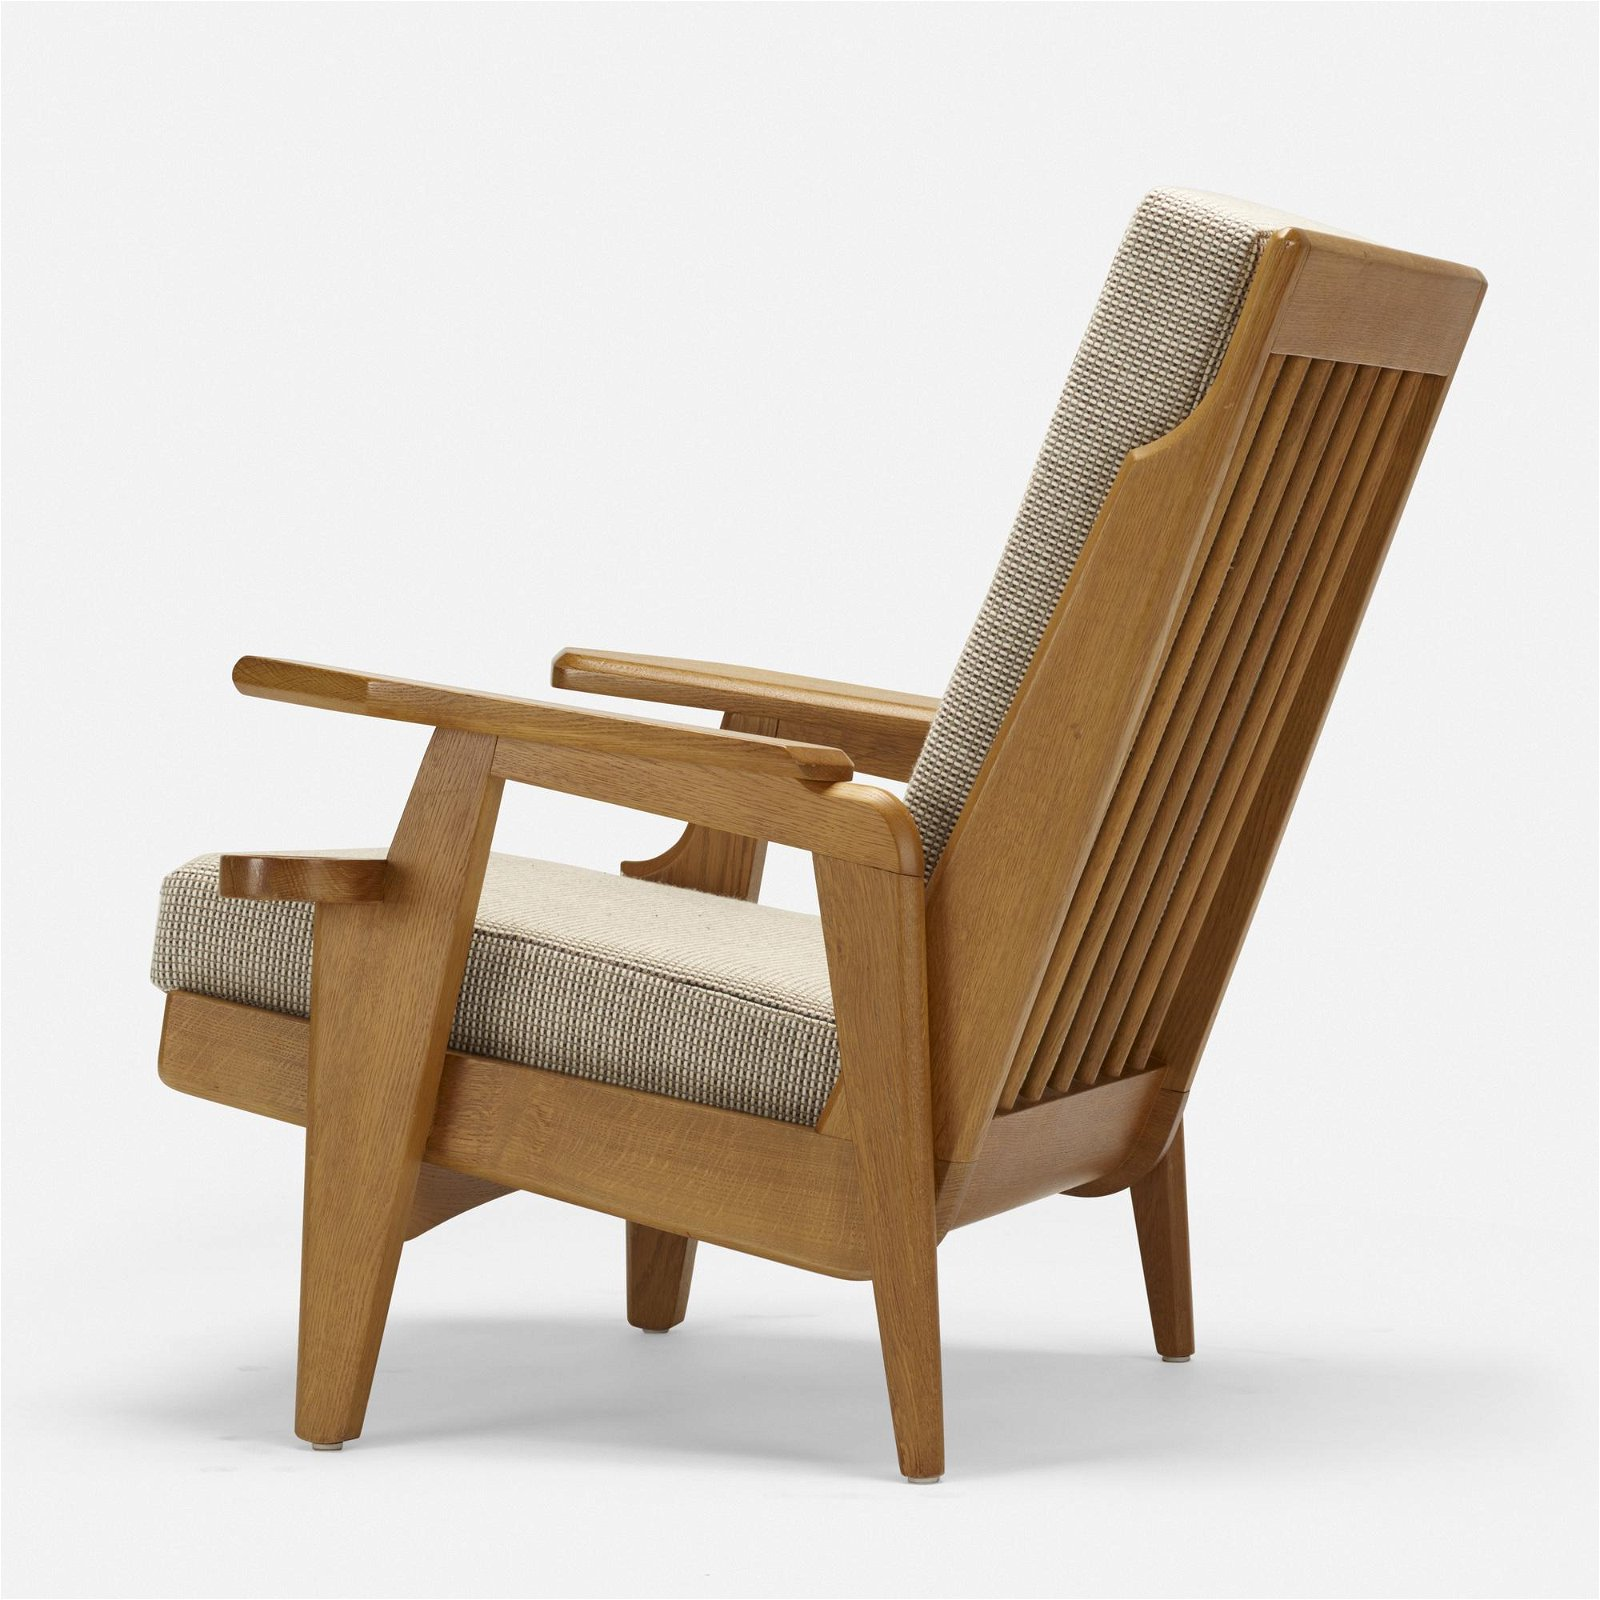 Robert Guillerme, attribution, lounge chair